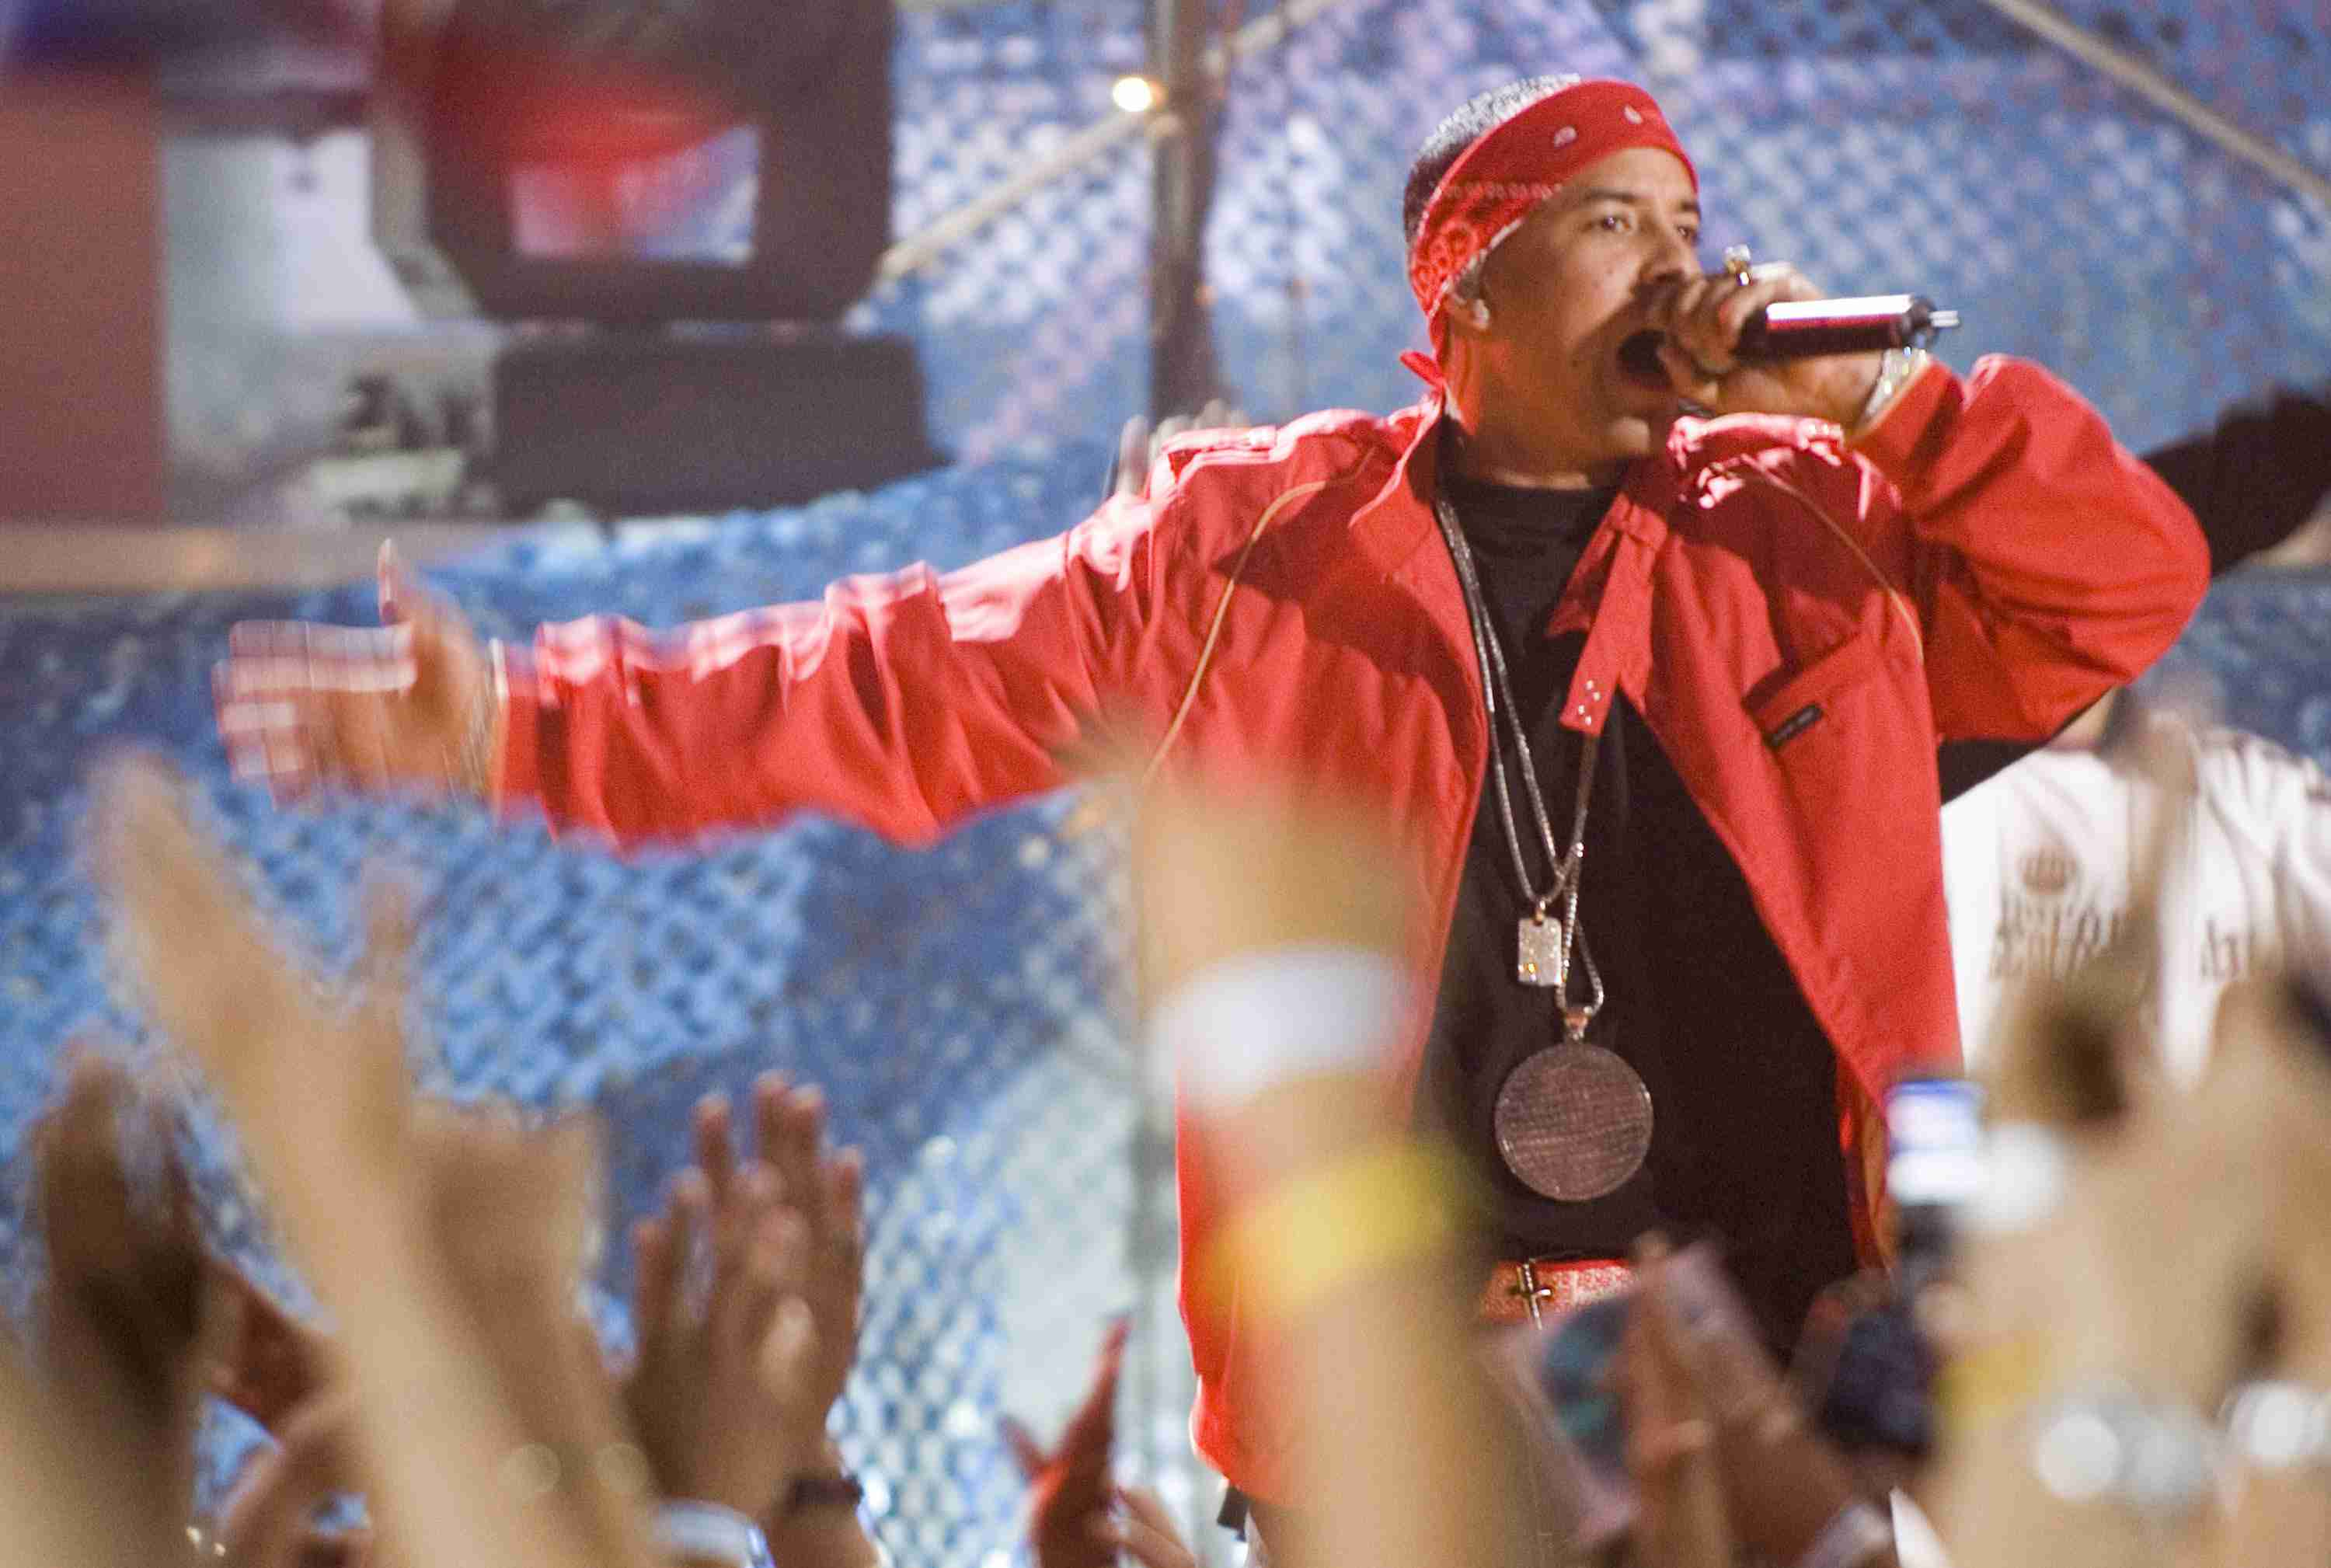 Daddy Yankee during Daddy Yankee Performs at MTV $2 Bill Concert at the Paradise Theater in New York - June 5, 2006 at Paradise Theater in New York, New York, United States.